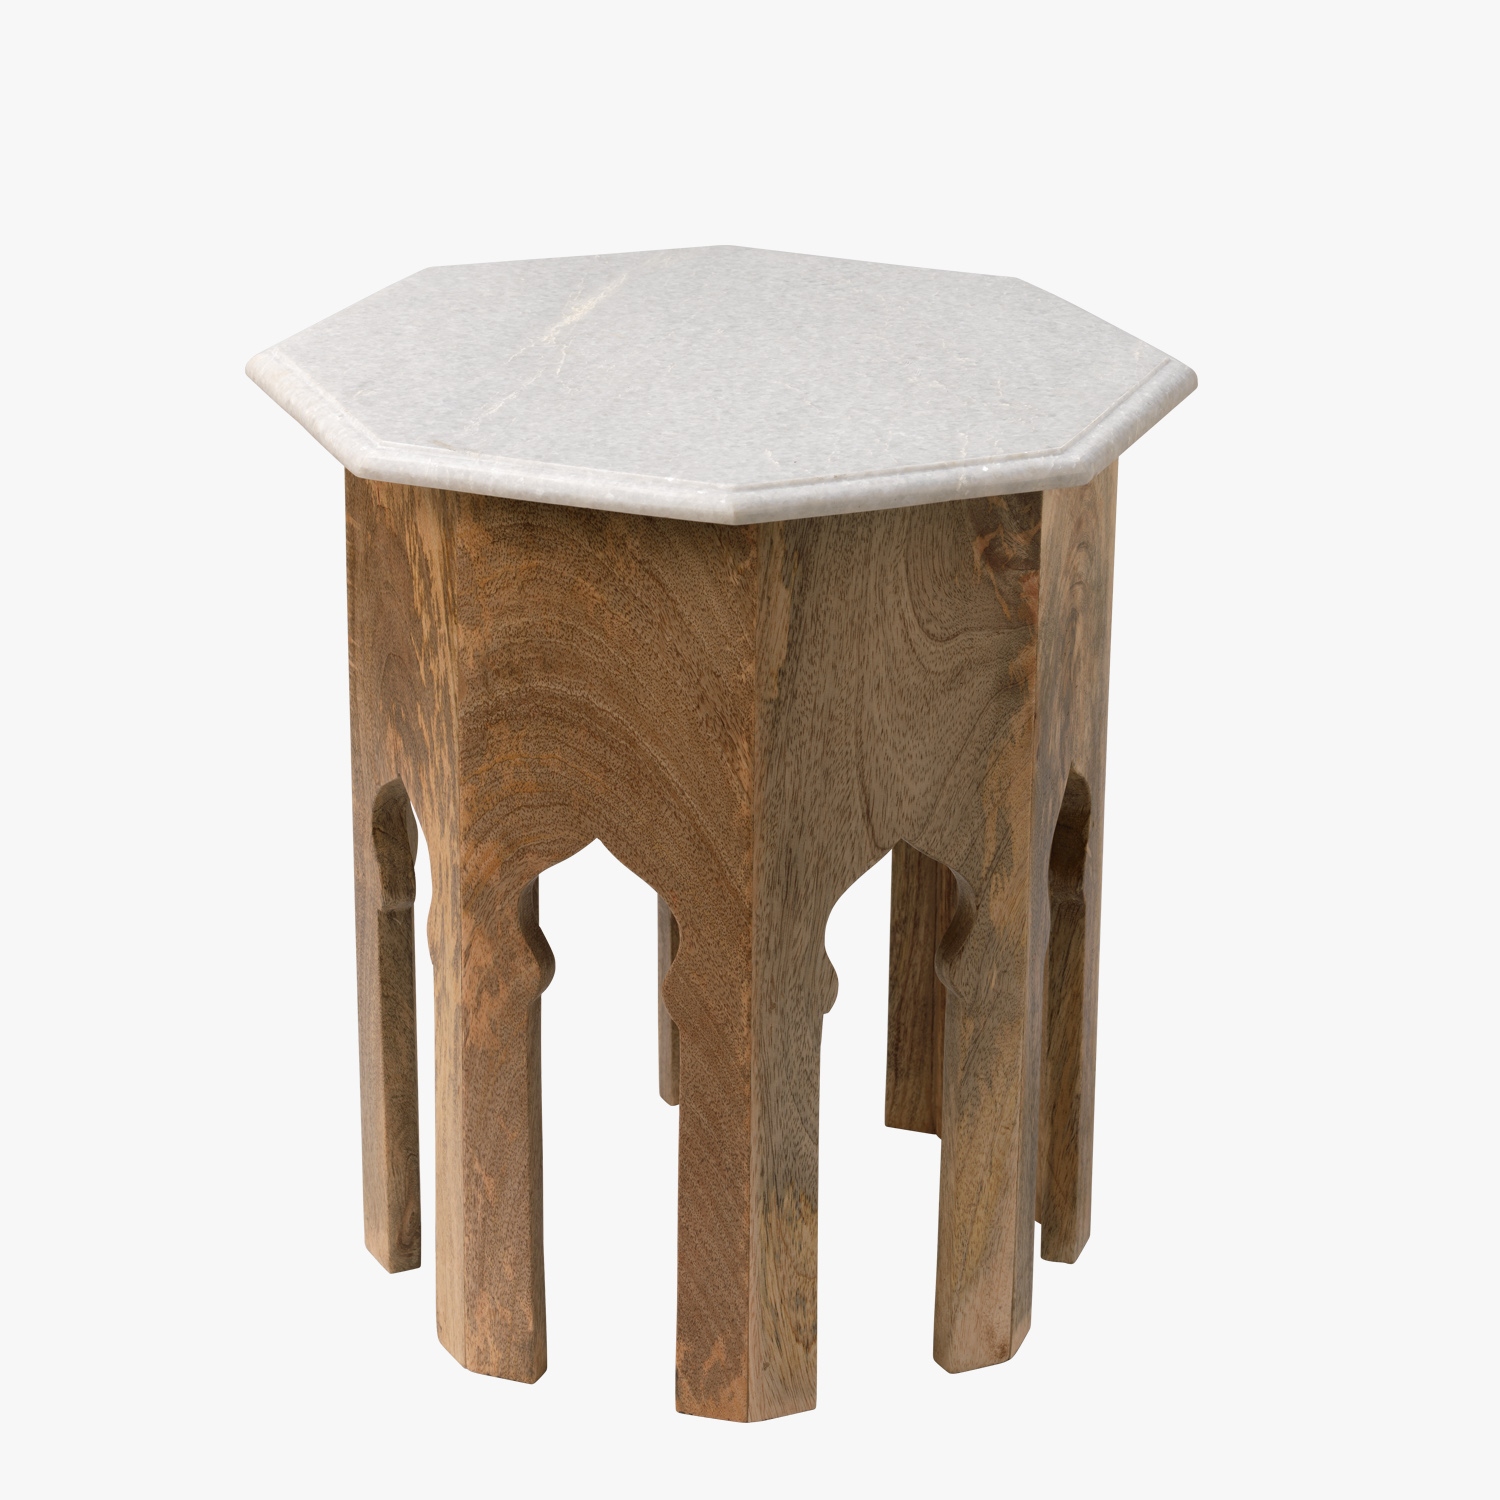 salma marble top table accent tables dear keaton casual dining sets large end tablecloth modern bedside lamps tall pub set teak patio furniture chairs game console bbq grill leg